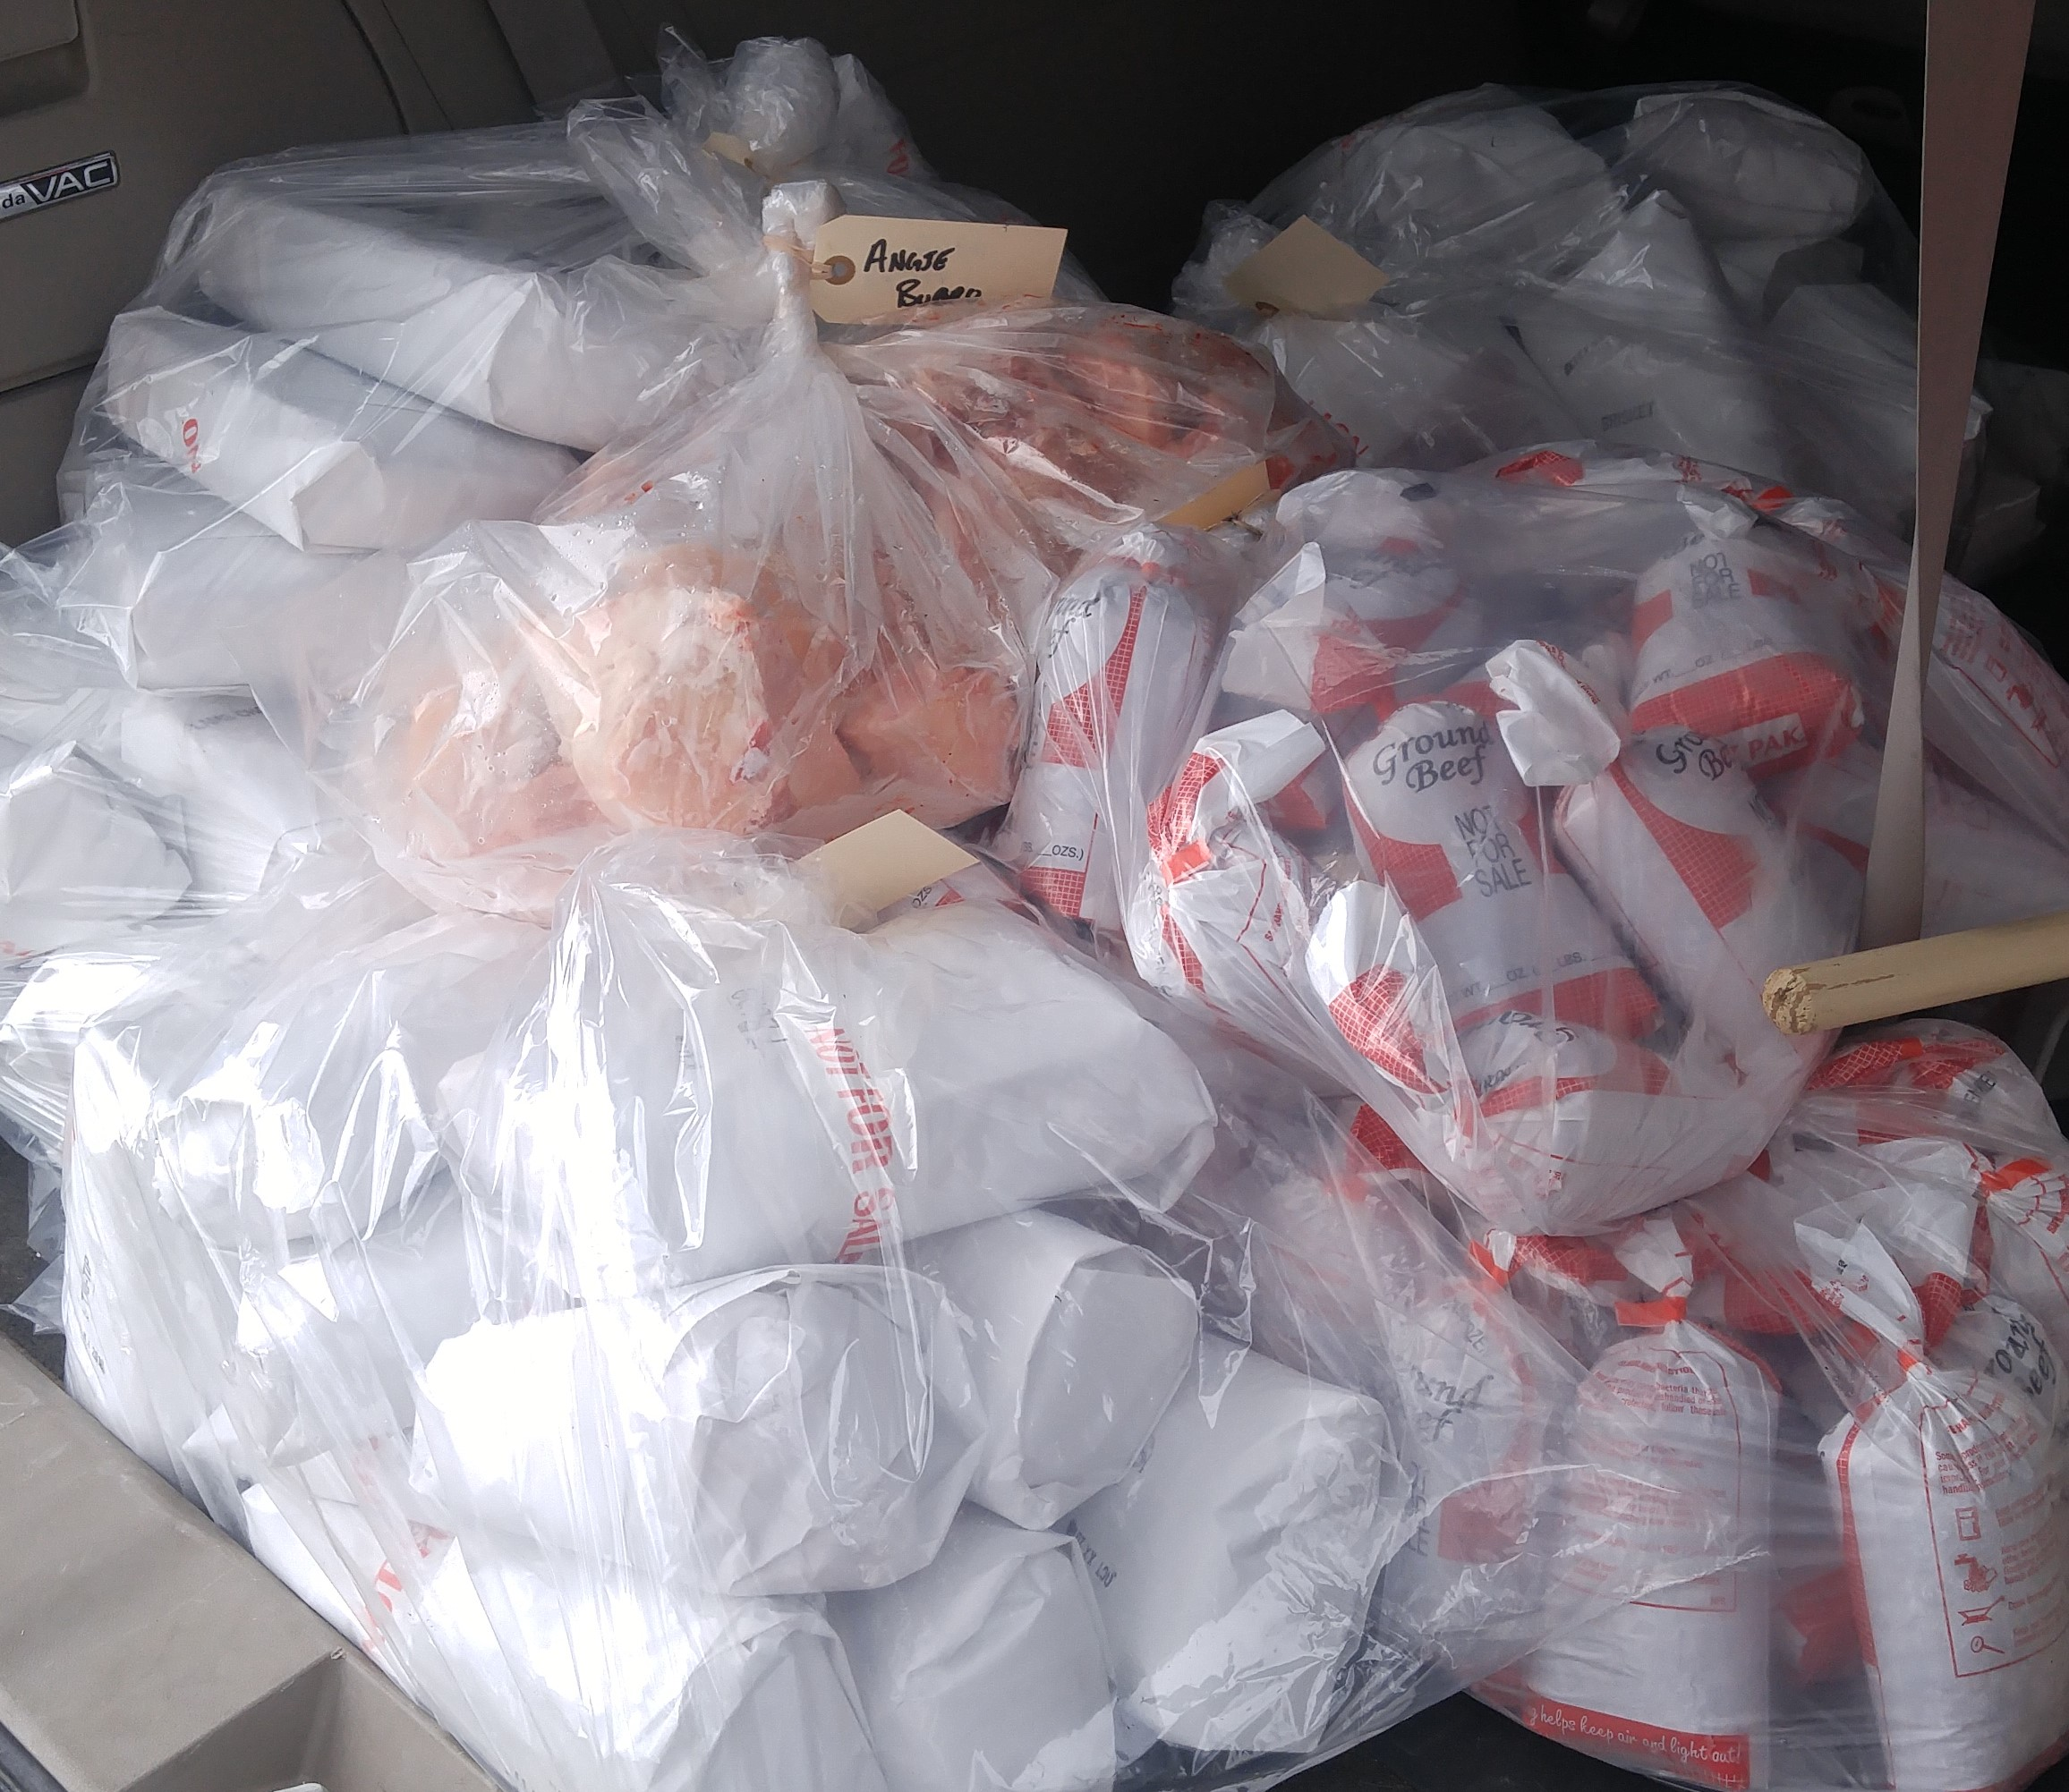 Half a beef and a small lamb in the back of my van after pick-up from the butcher shop. This needs some organization! Note the tags banded to the bags - you can use the back of these to label your bags!